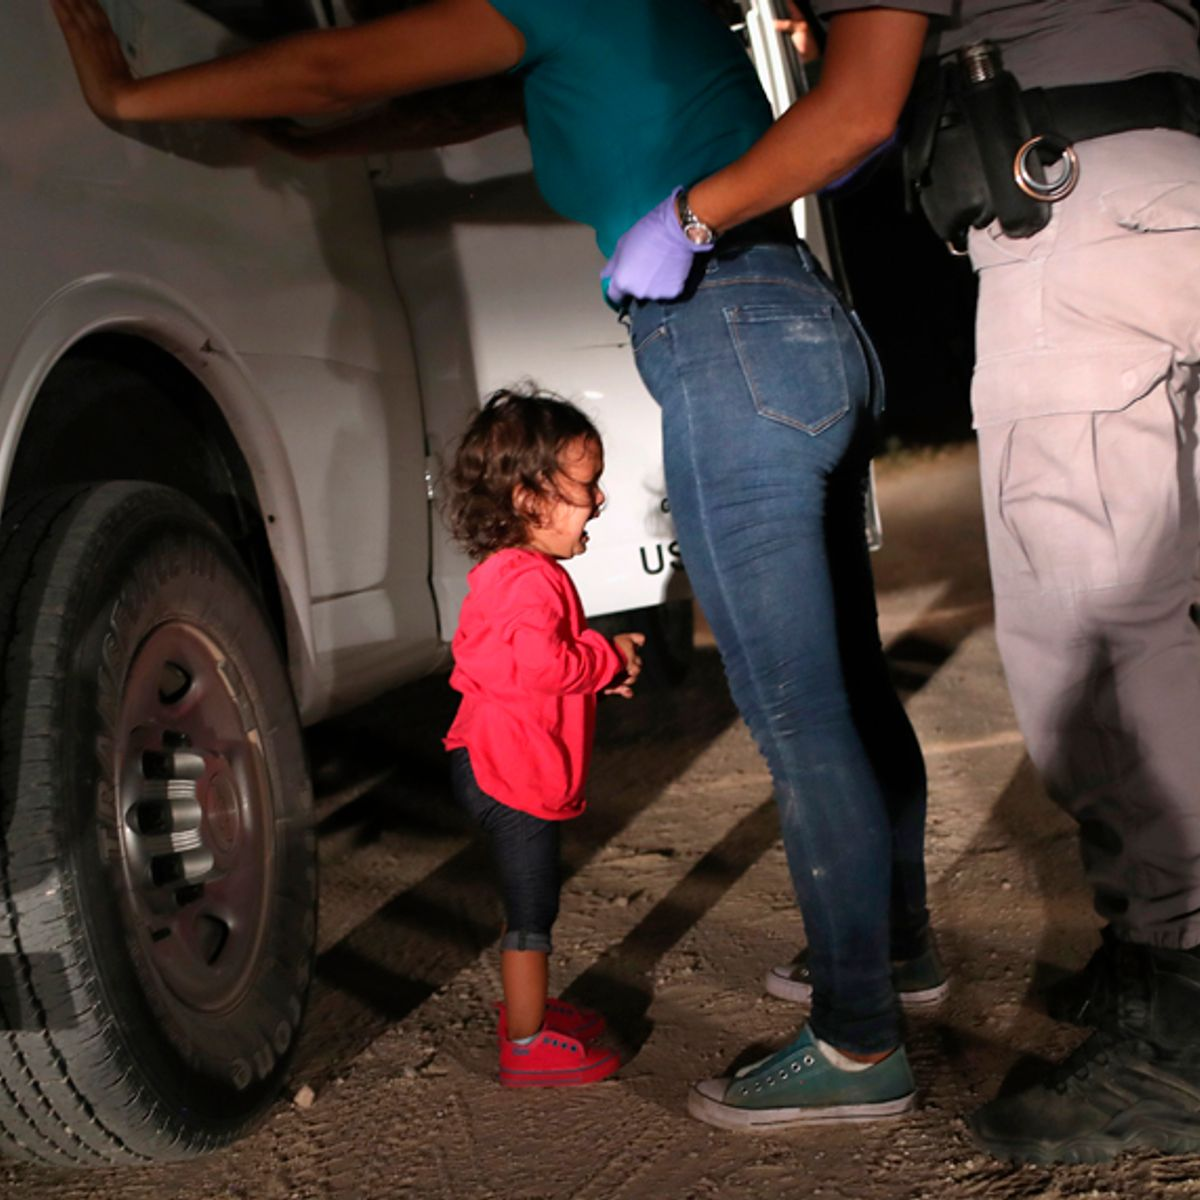 how many children have been separated from their parents at the border